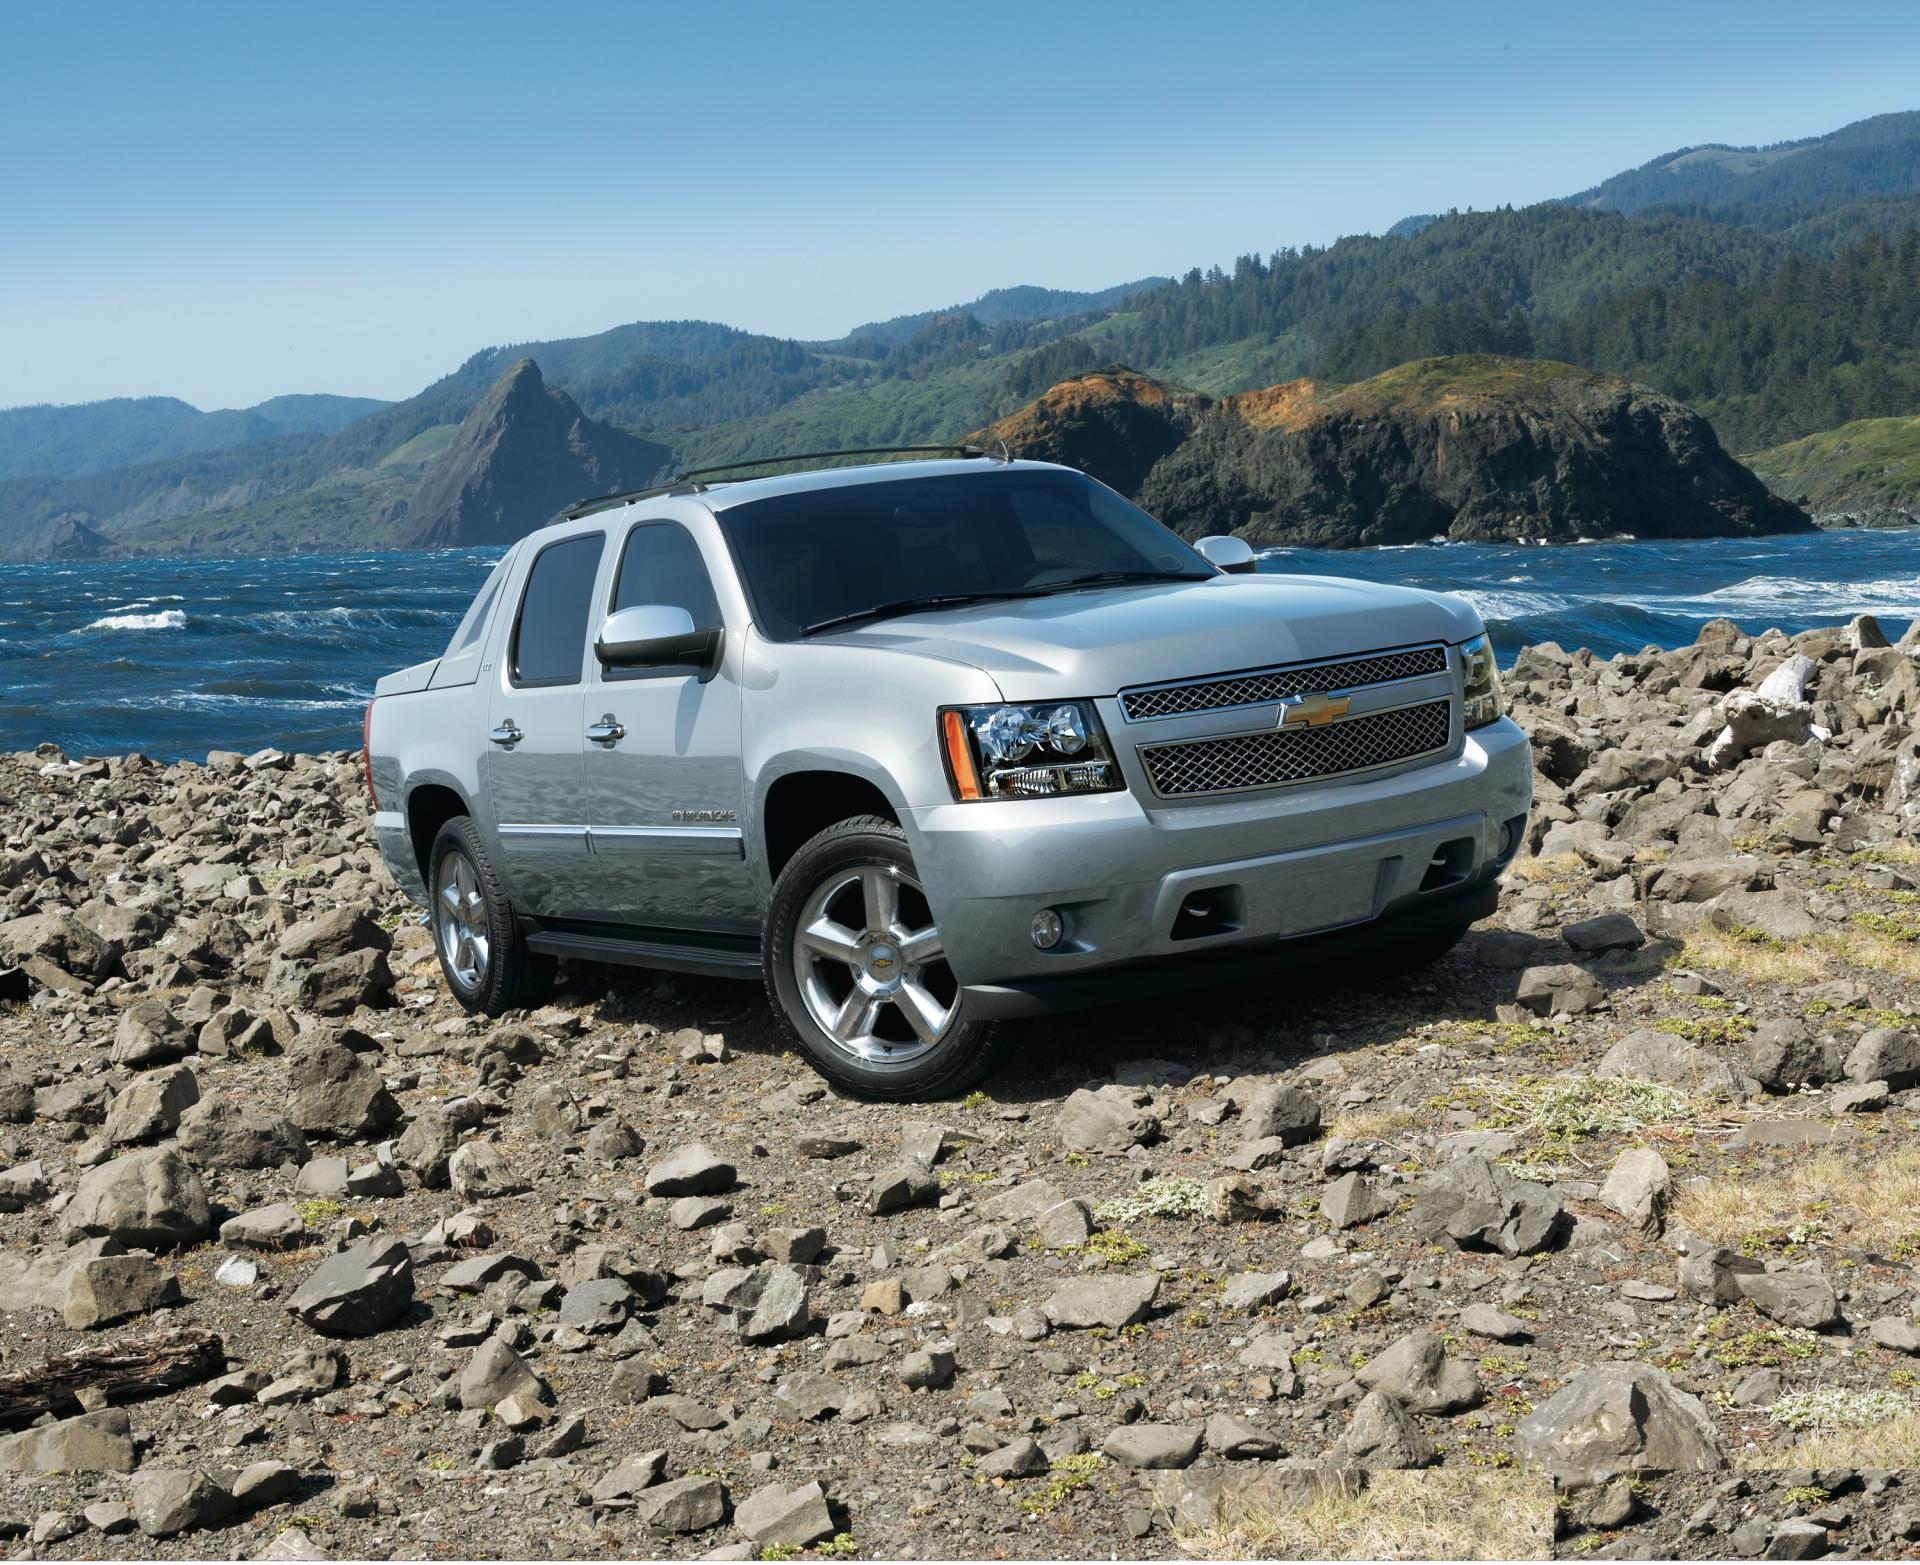 2012 Chevrolet Avalanche News and Information